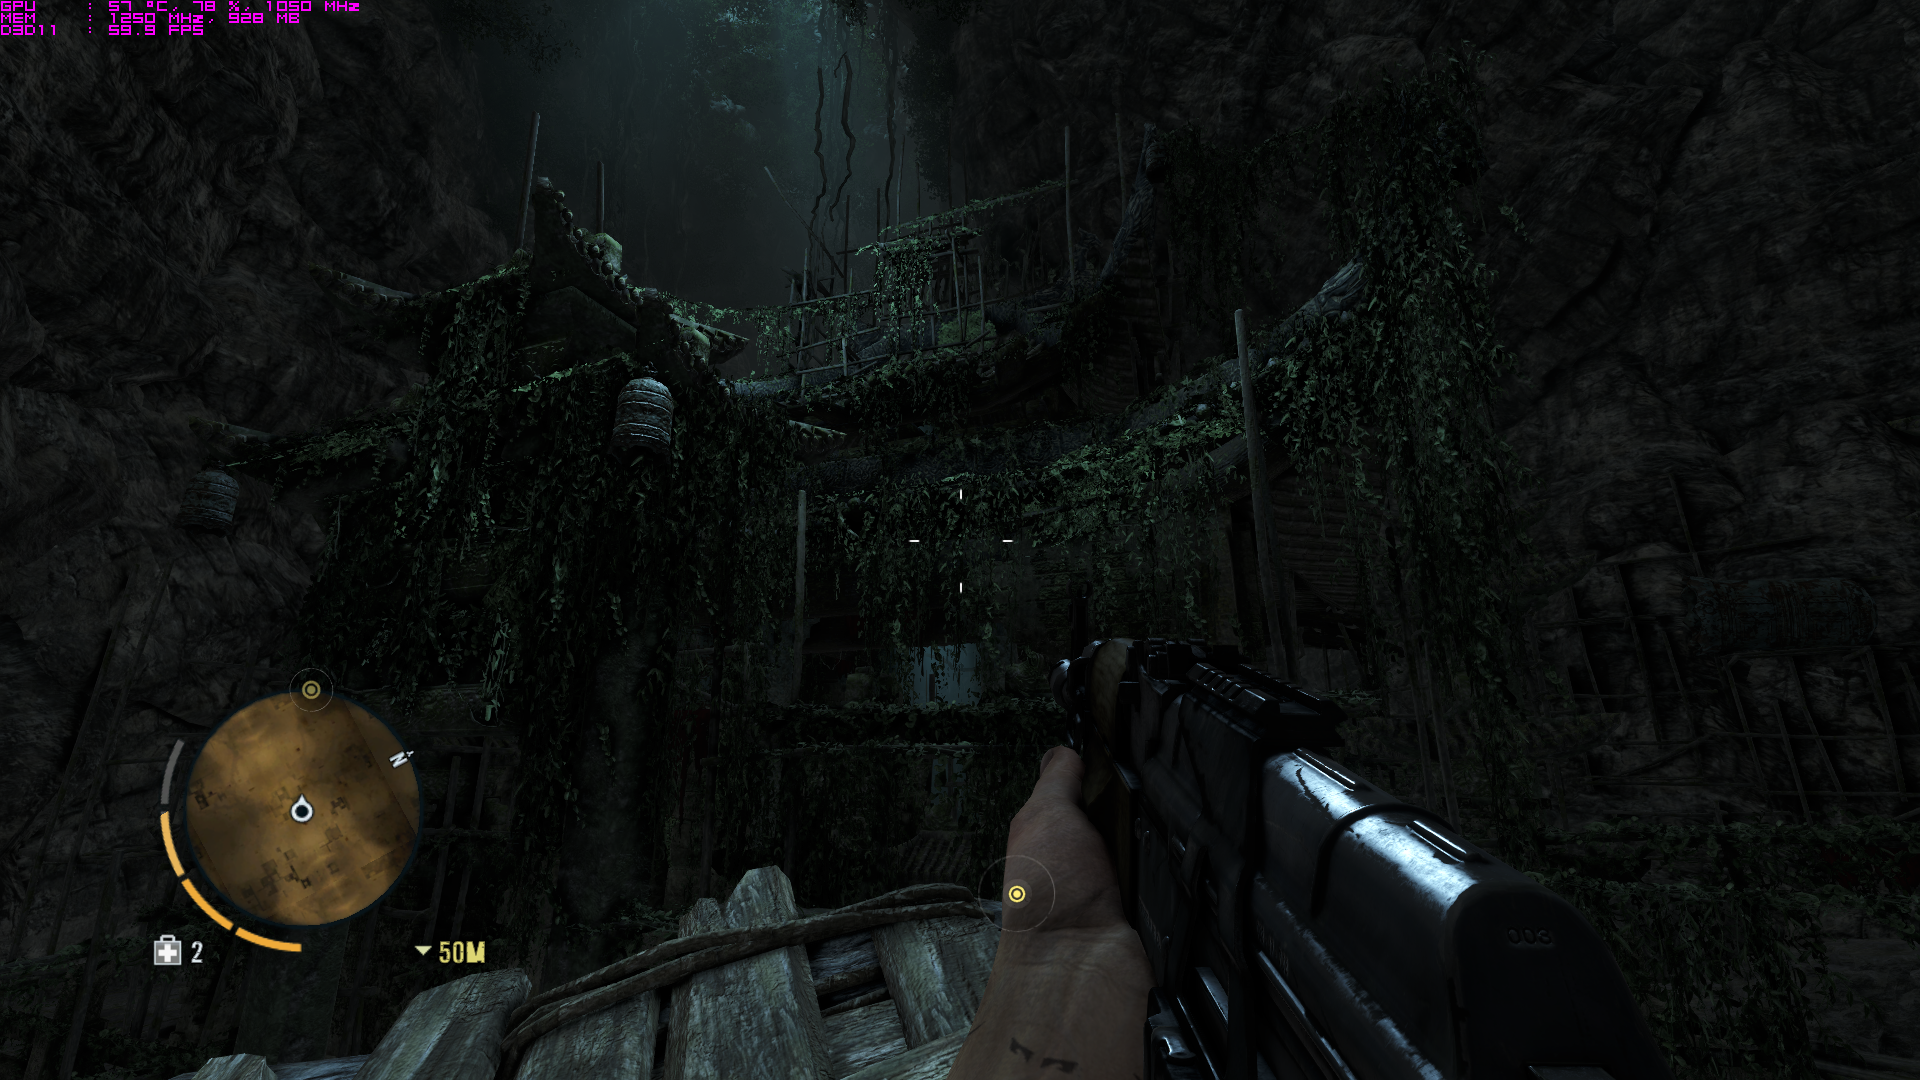 farcry3_d3d11_2012_12_04_15_38_33_655.png